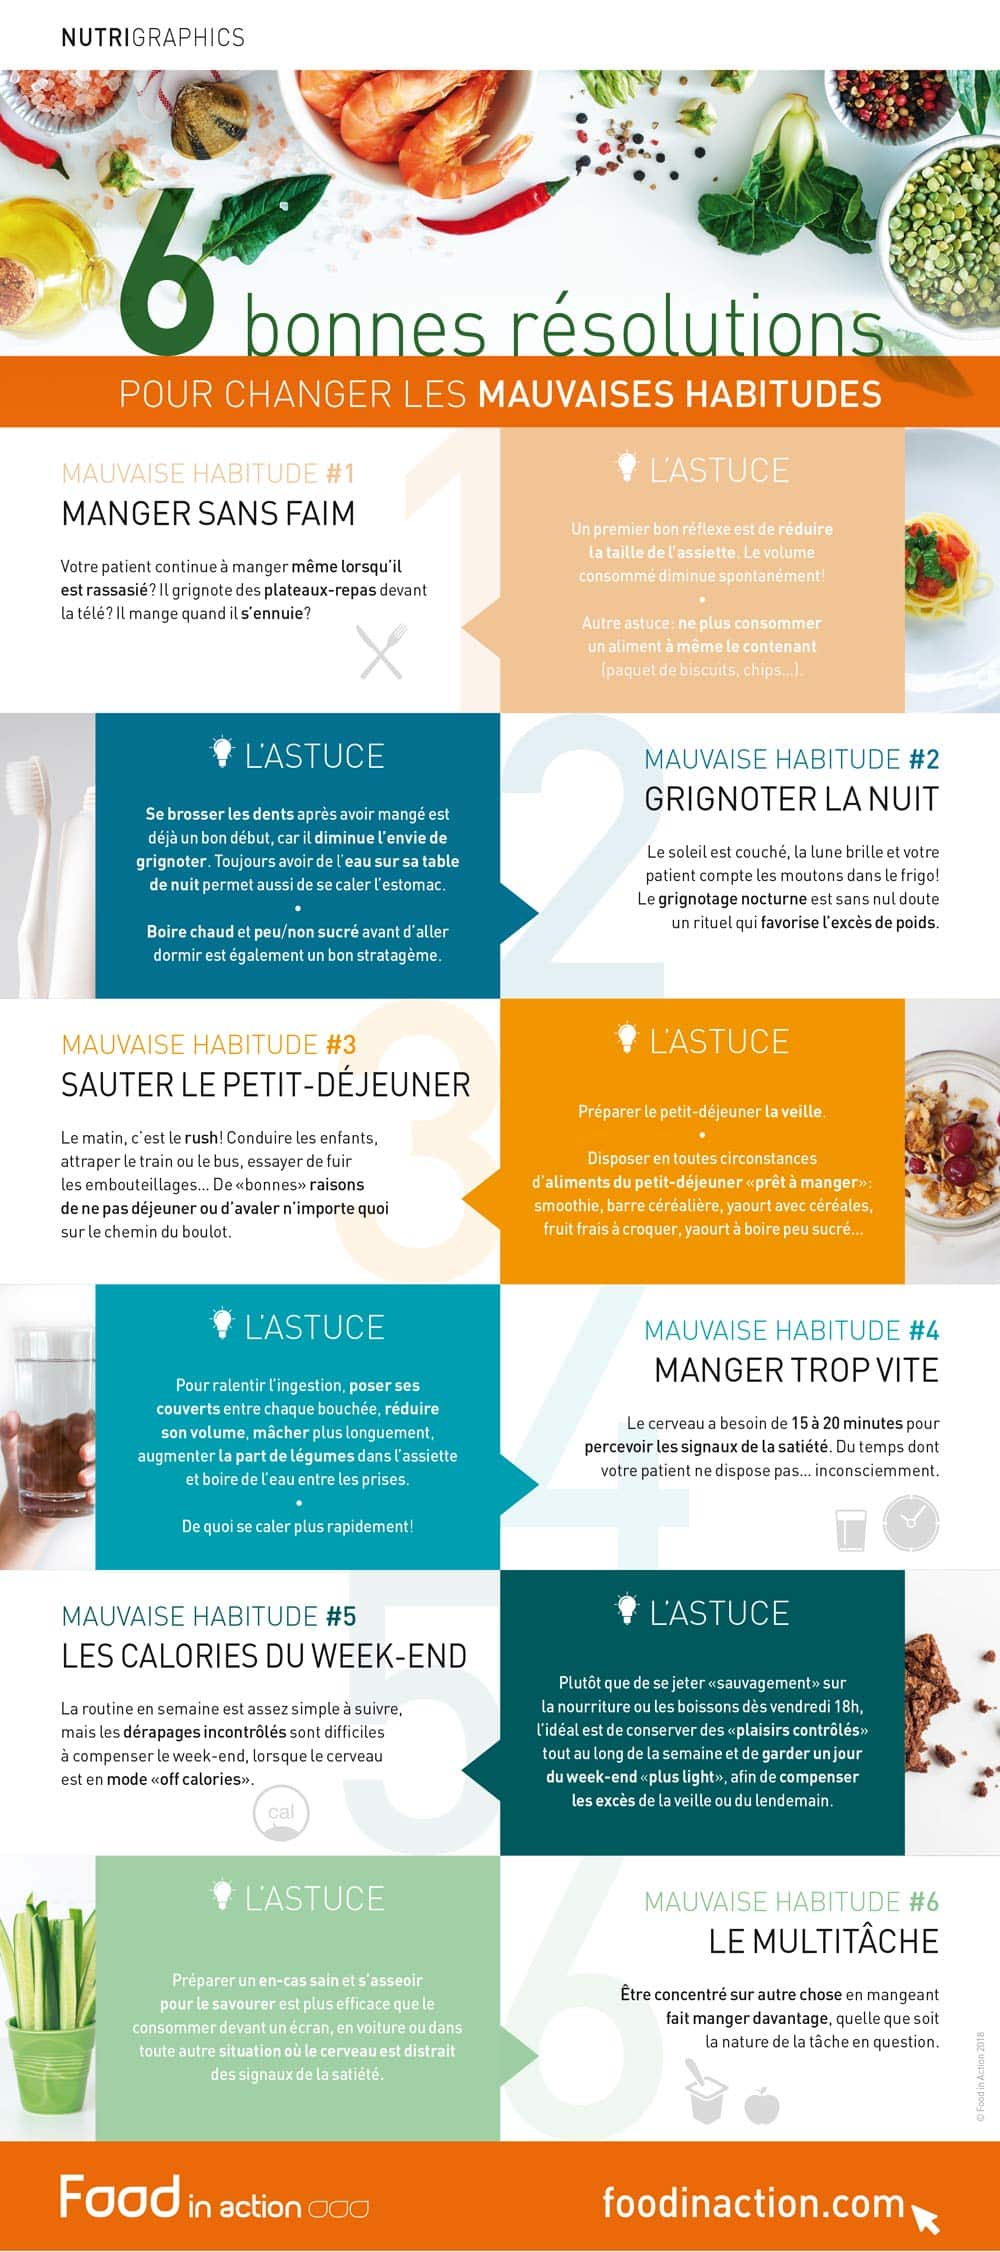 nutrigraphics-resolutions-mauvaises-habitudes